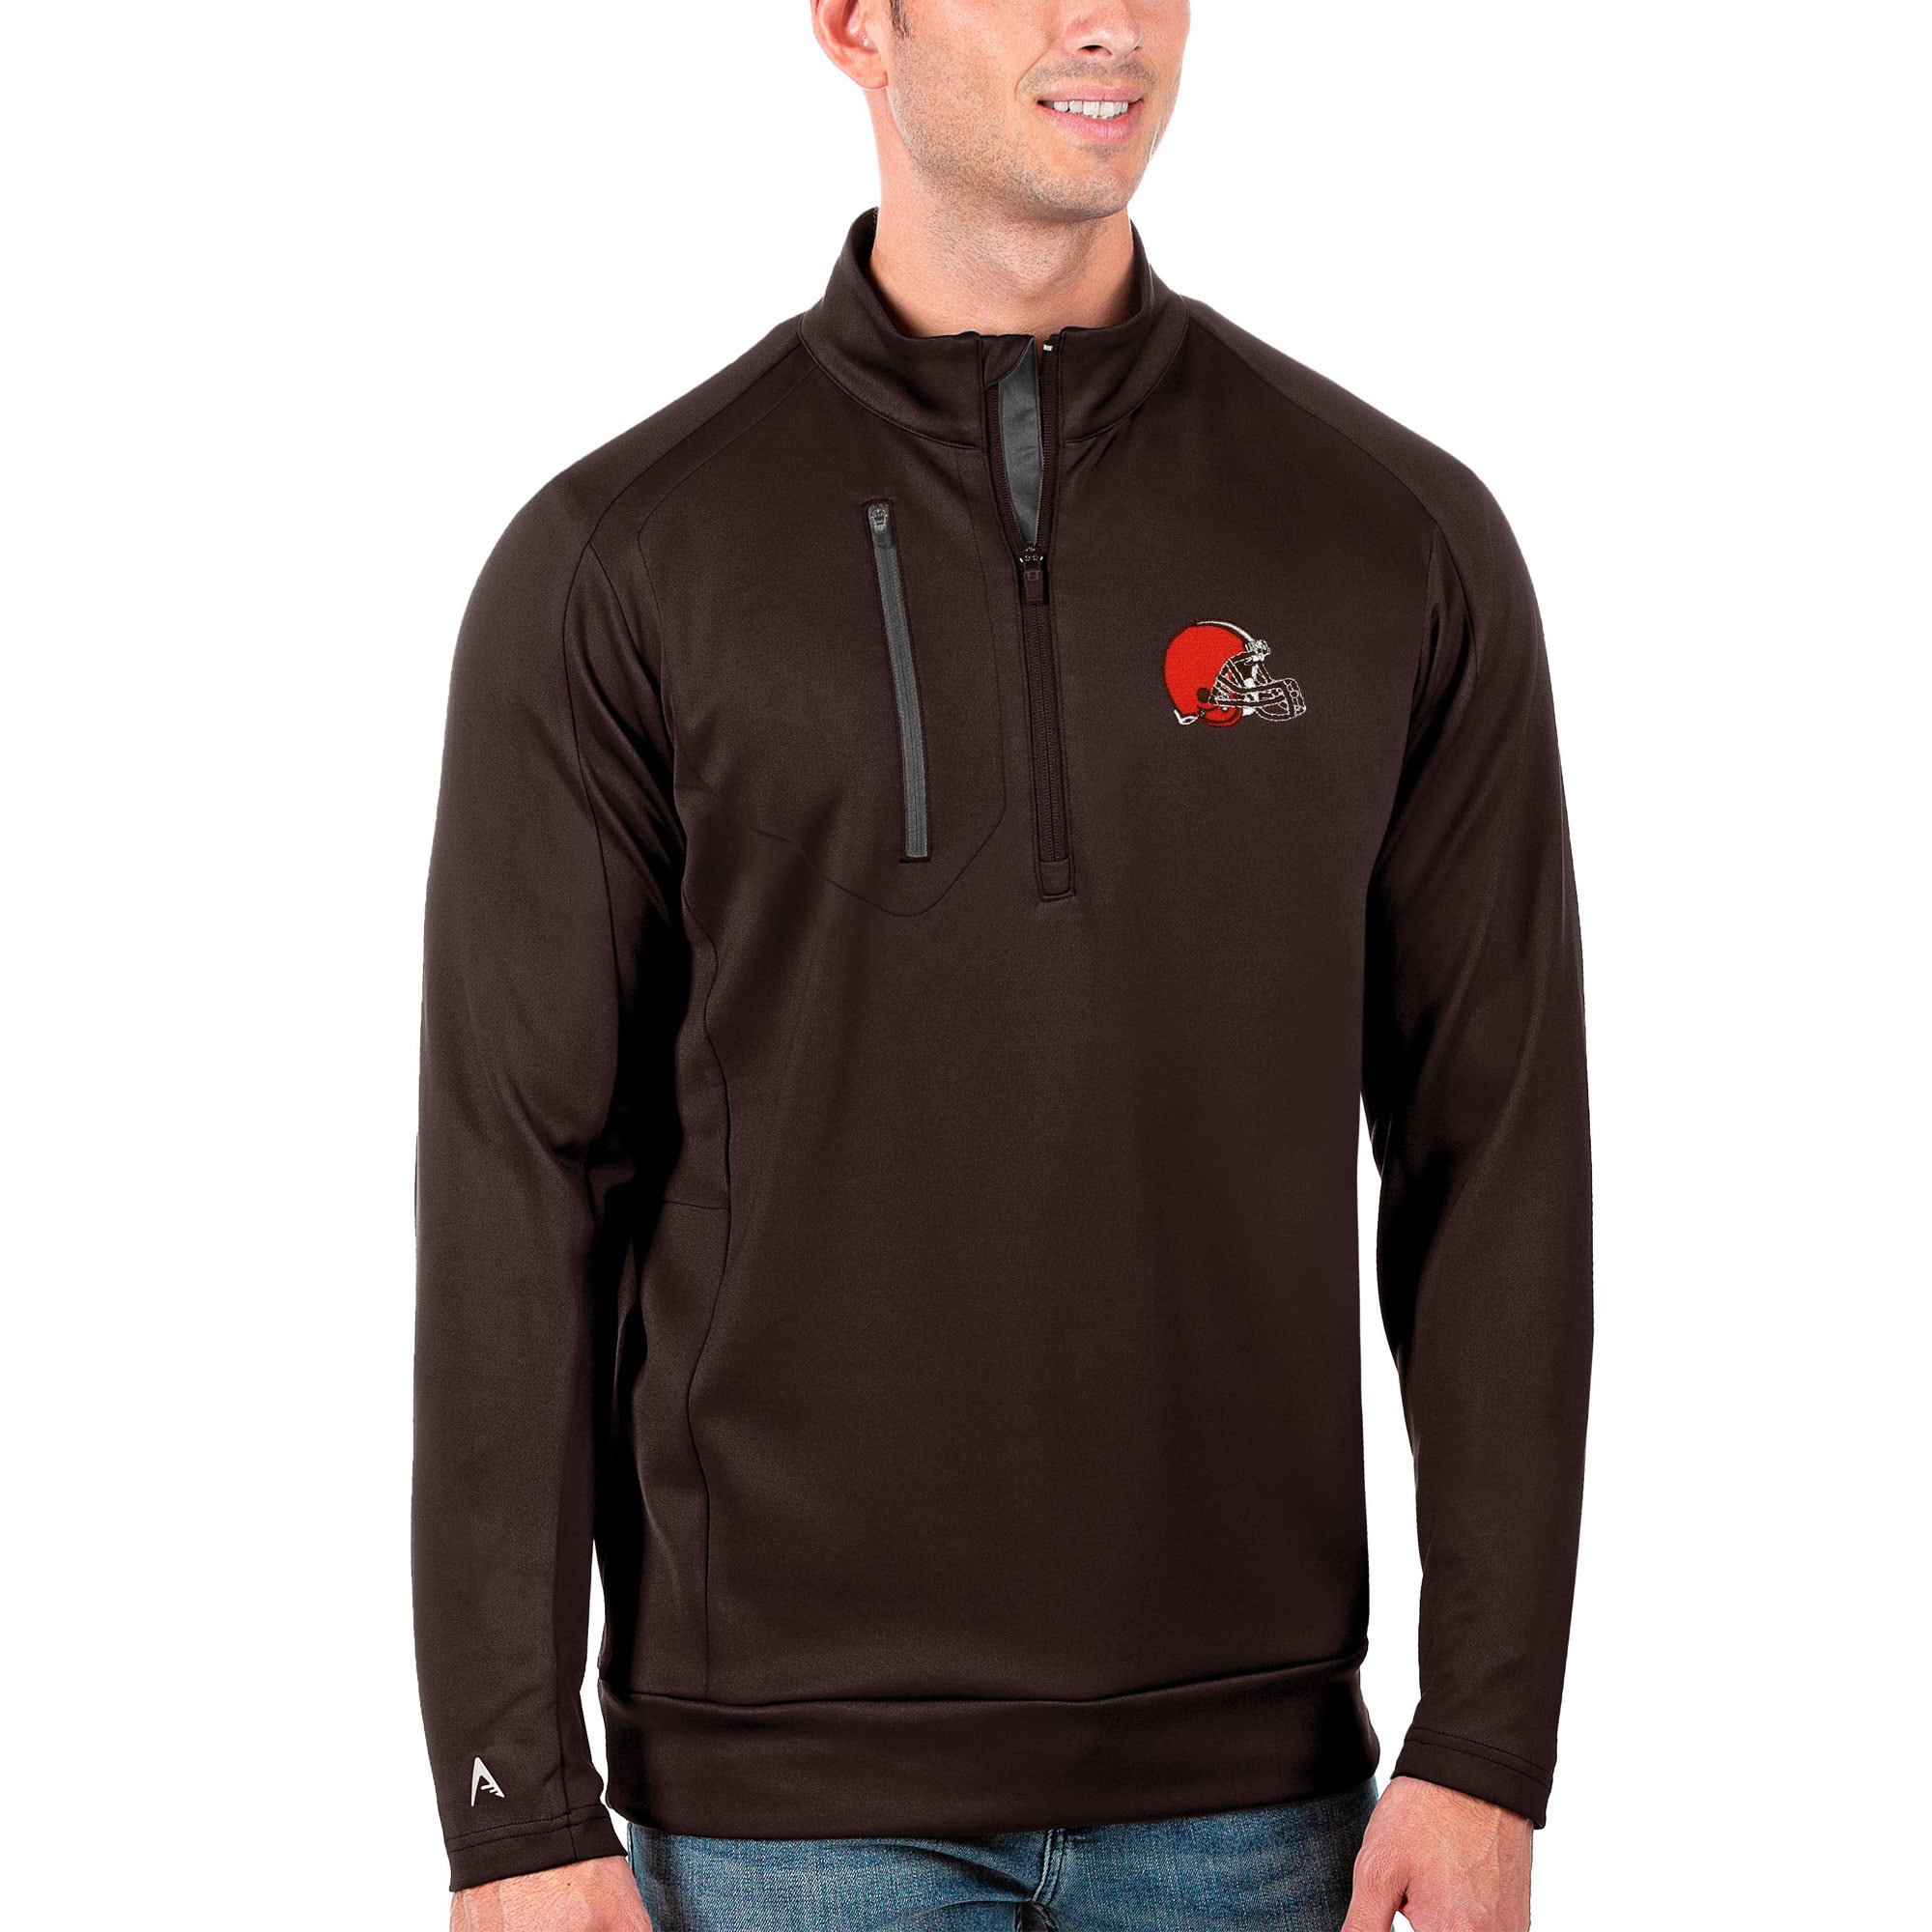 Cleveland Browns Antigua Generation Quarter-Zip Pullover Jacket - Brown/Charcoal